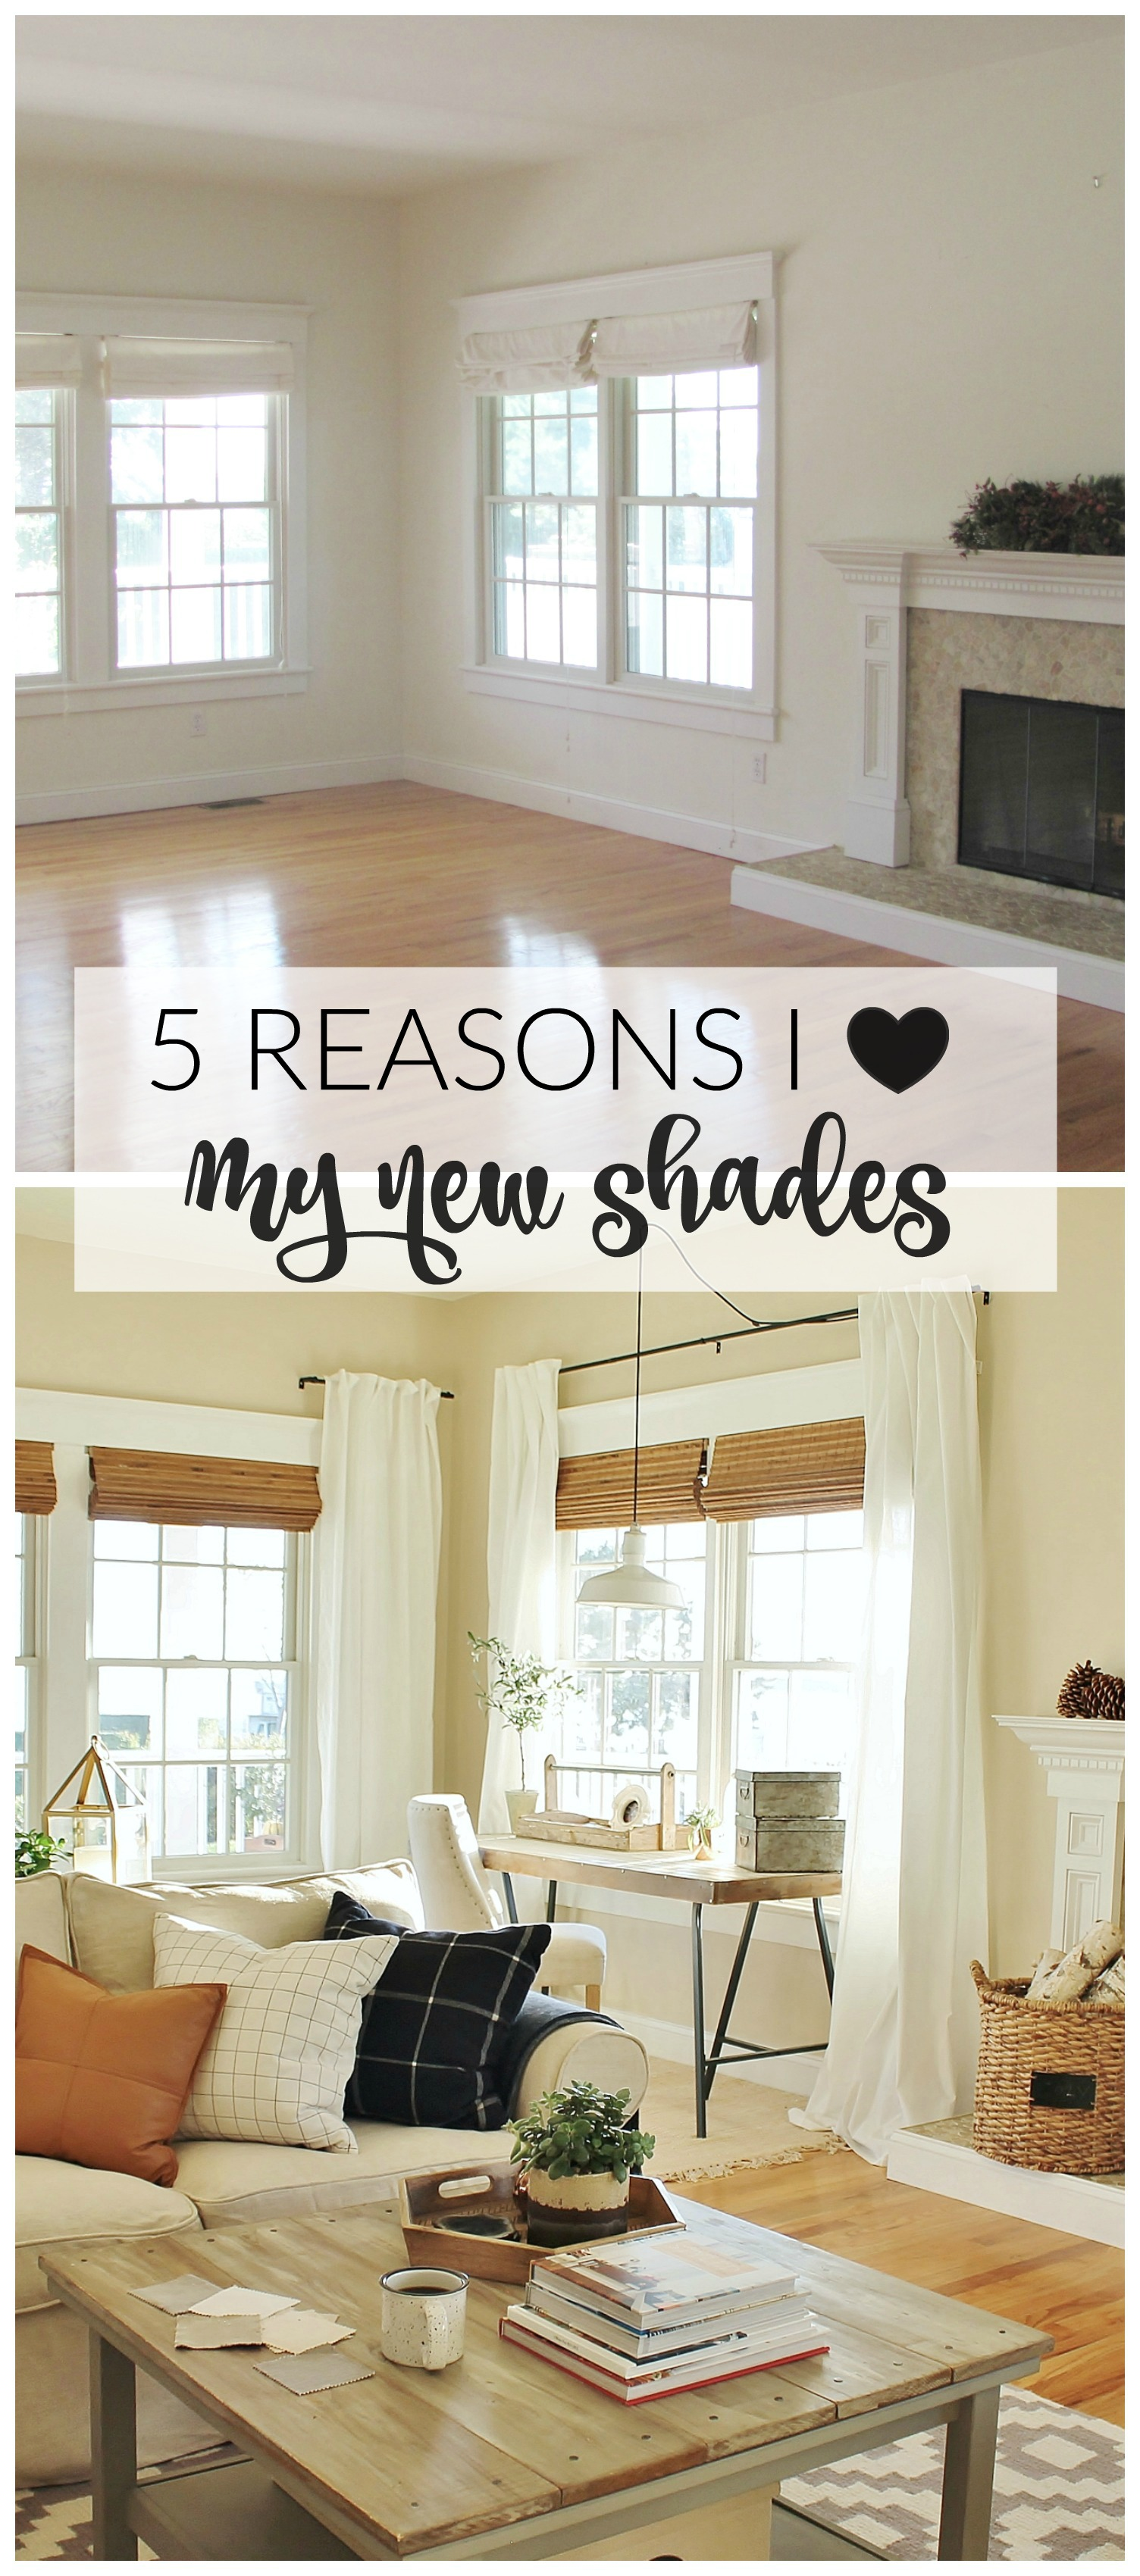 5 Reasons I Love My New Woven Shades City Farmhouse